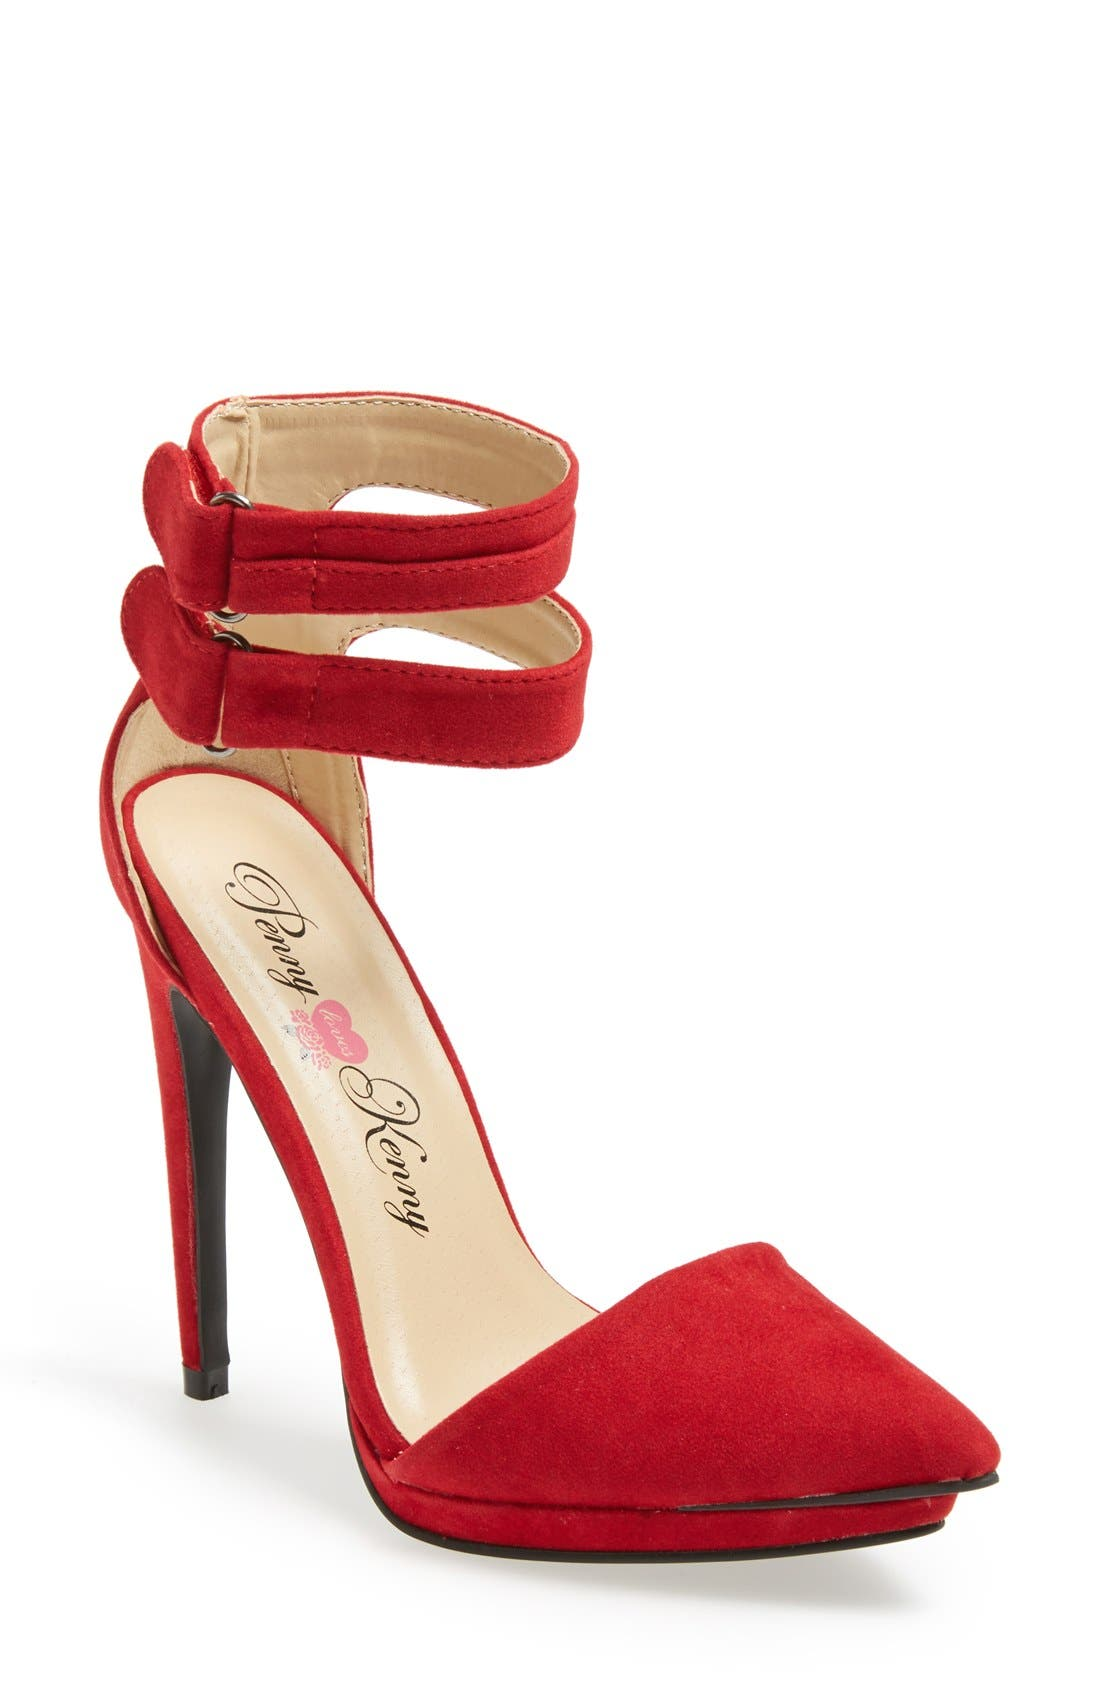 Alternate Image 1 Selected - Penny Loves Kenny 'Narly' Pointy Toe Pump (Women)